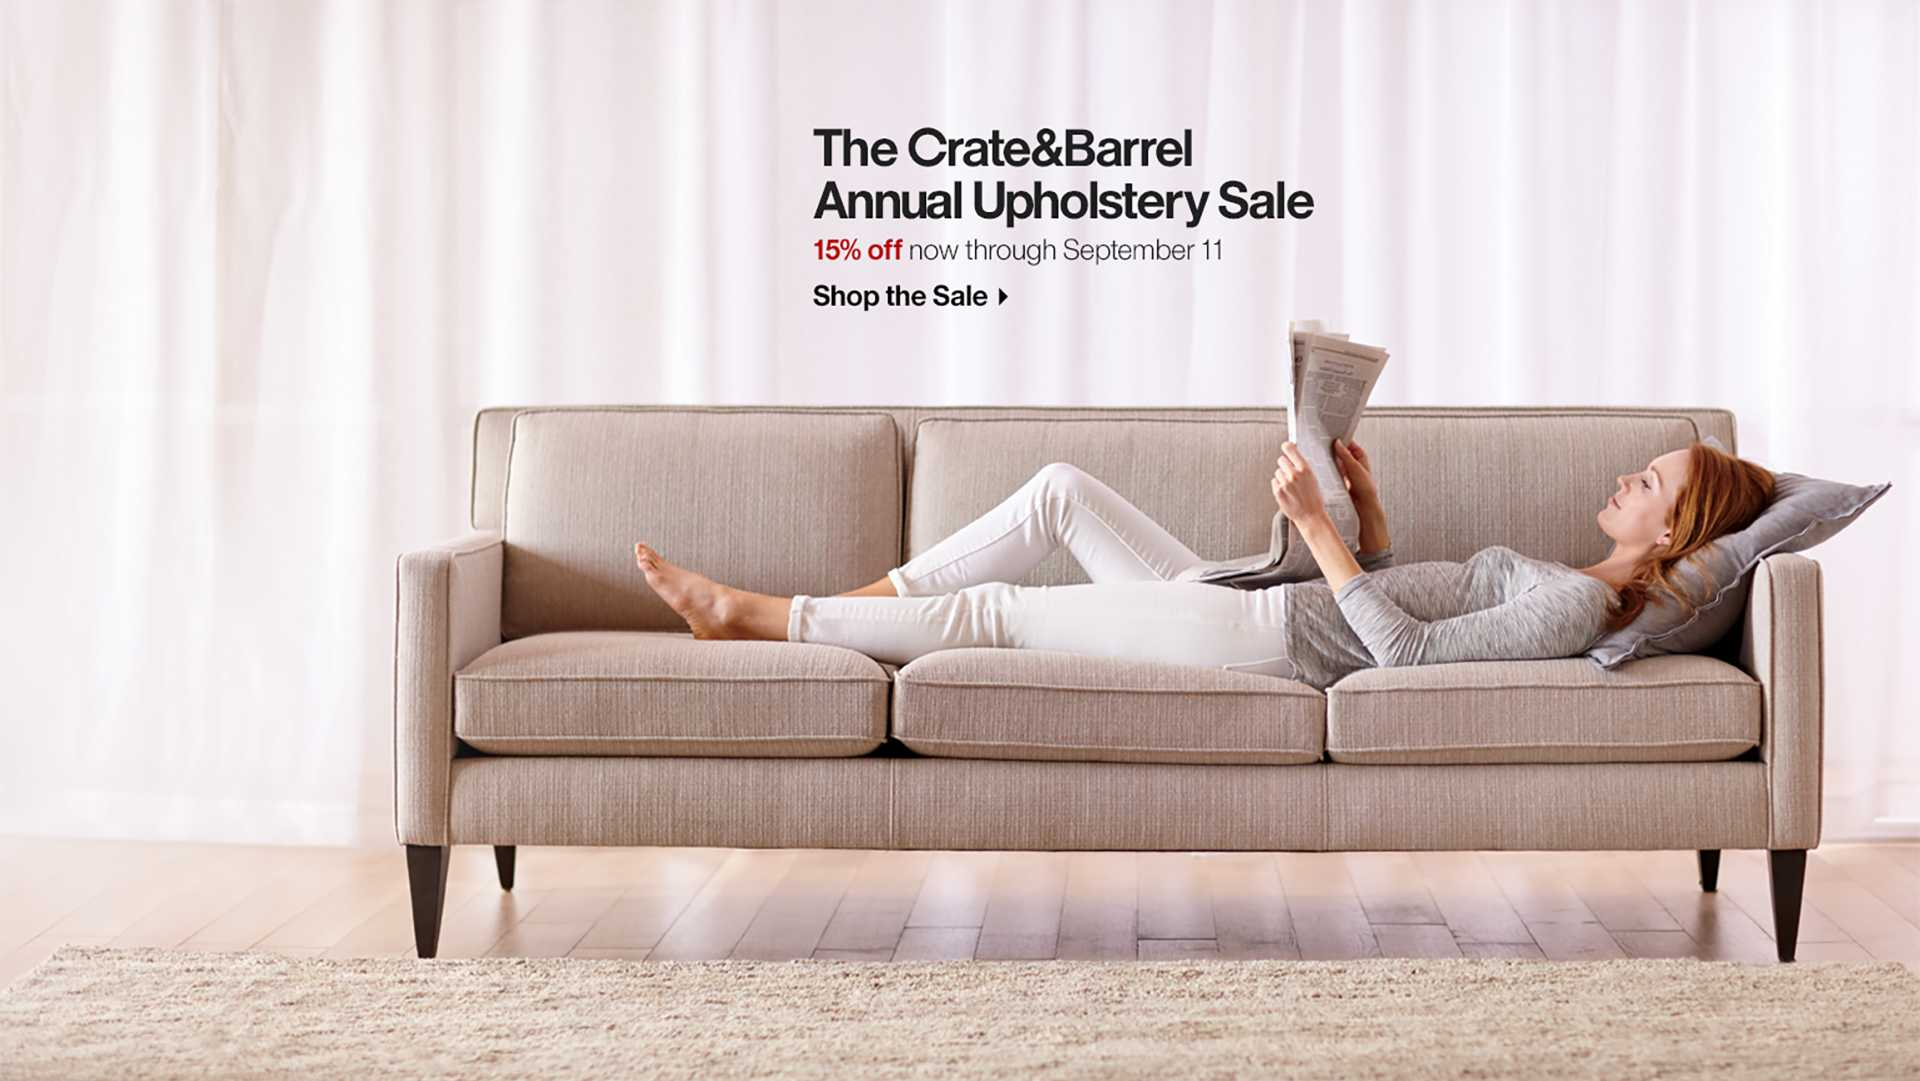 The Crate and Barrel Annual Upholstery Sale 15% off now through September 11